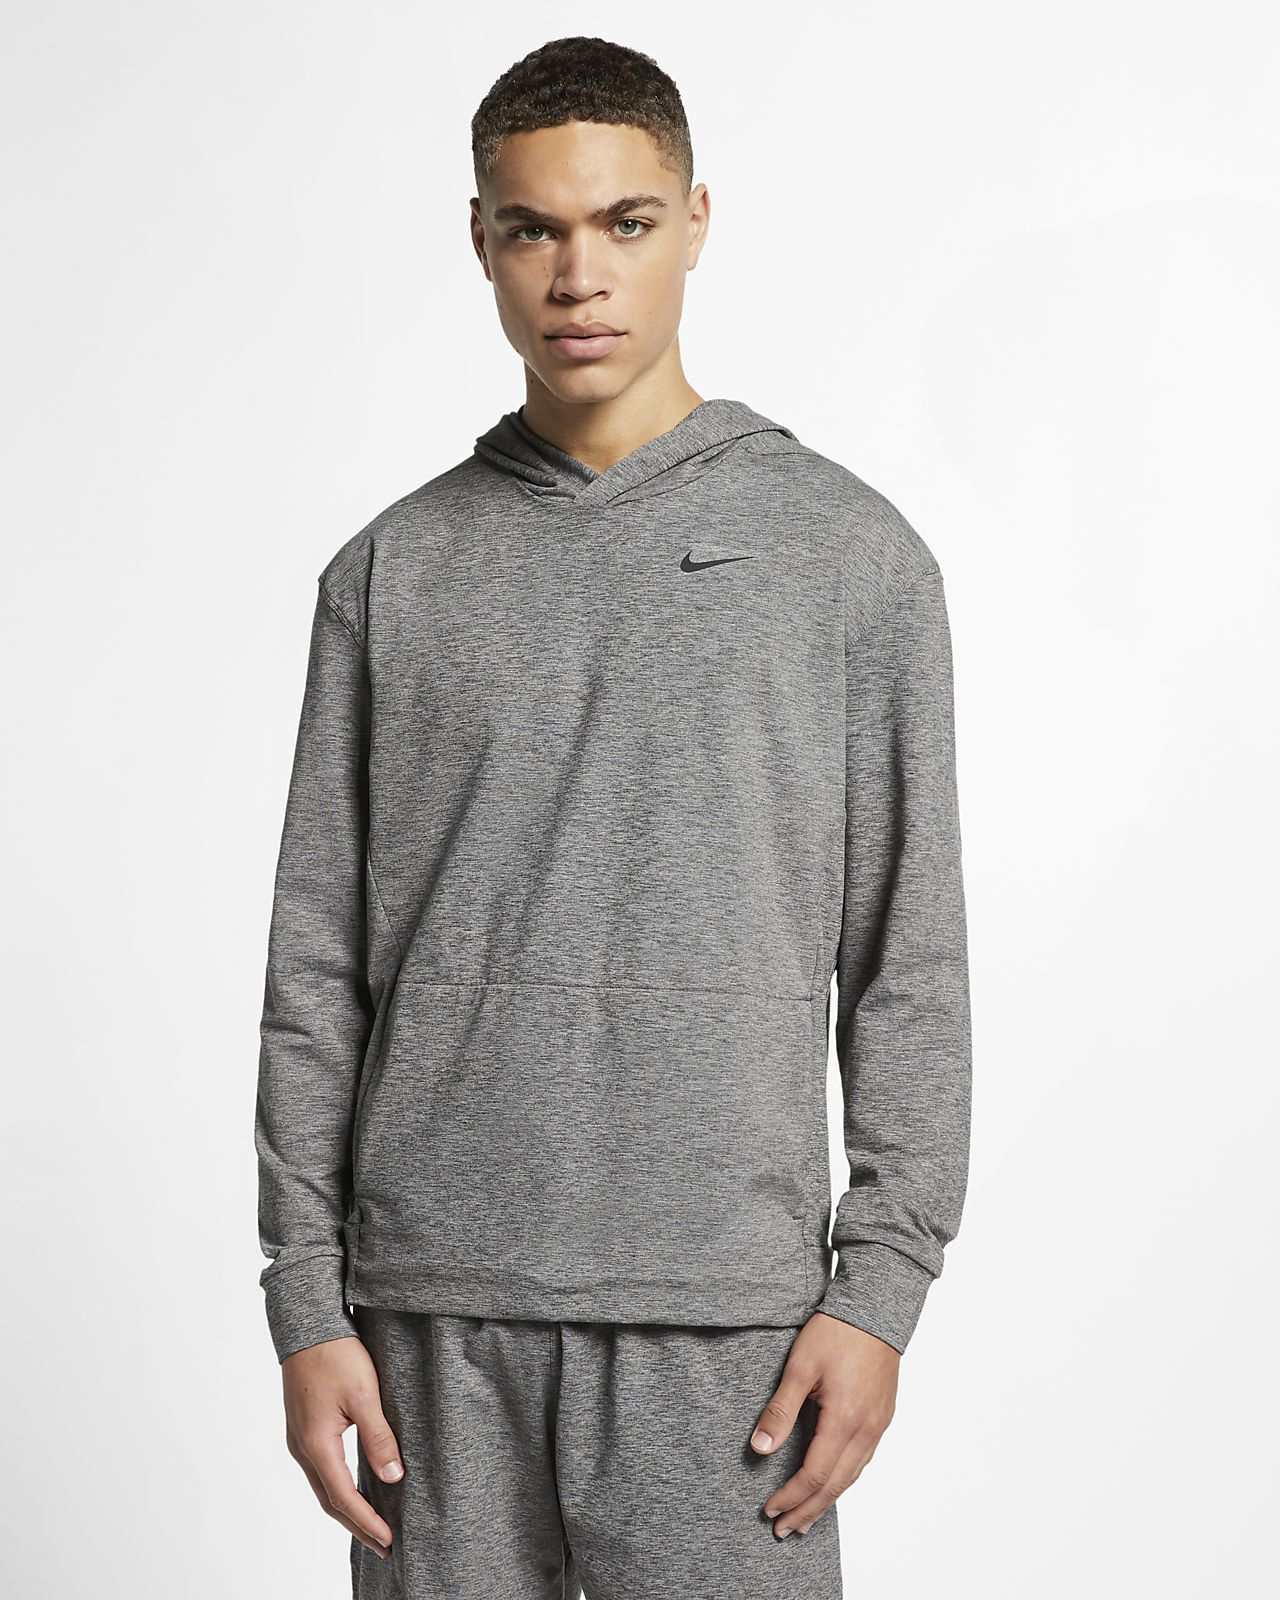 Nike Dri-FIT langärmeliger Yoga-Trainings-Hoodie für Herren